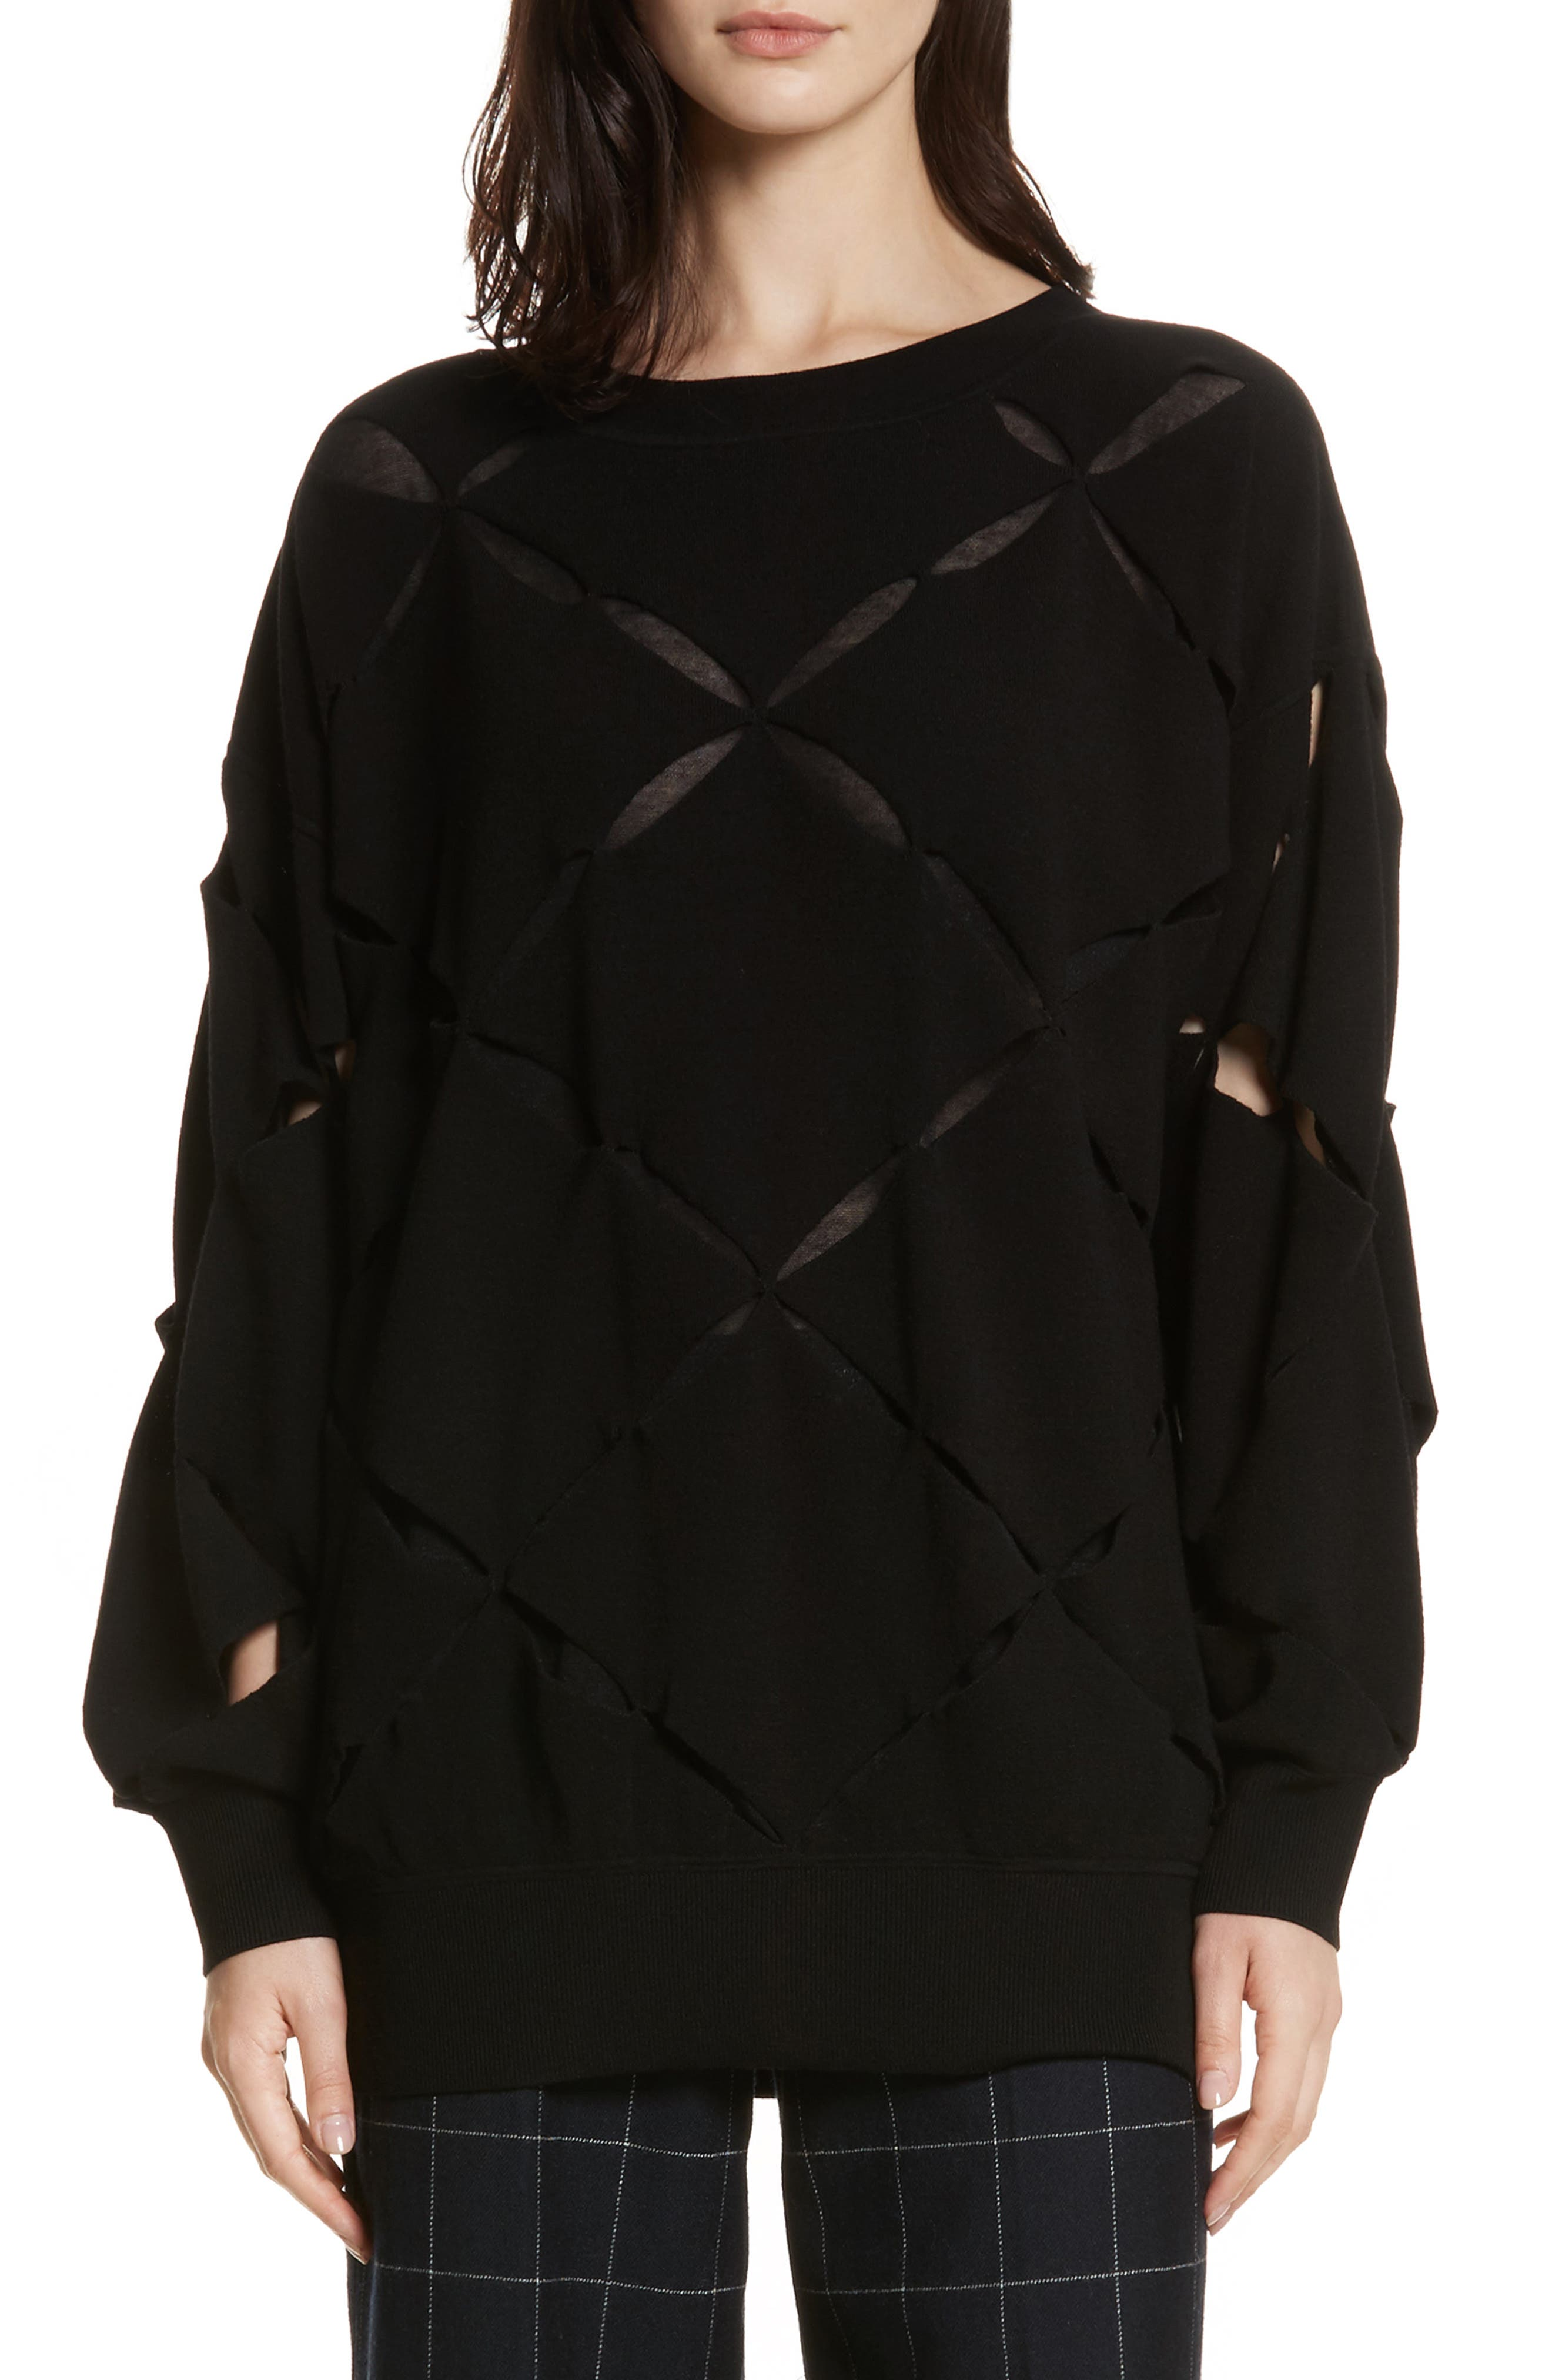 Alternate Image 1 Selected - Elizabeth and James Roz Cutout Sweater